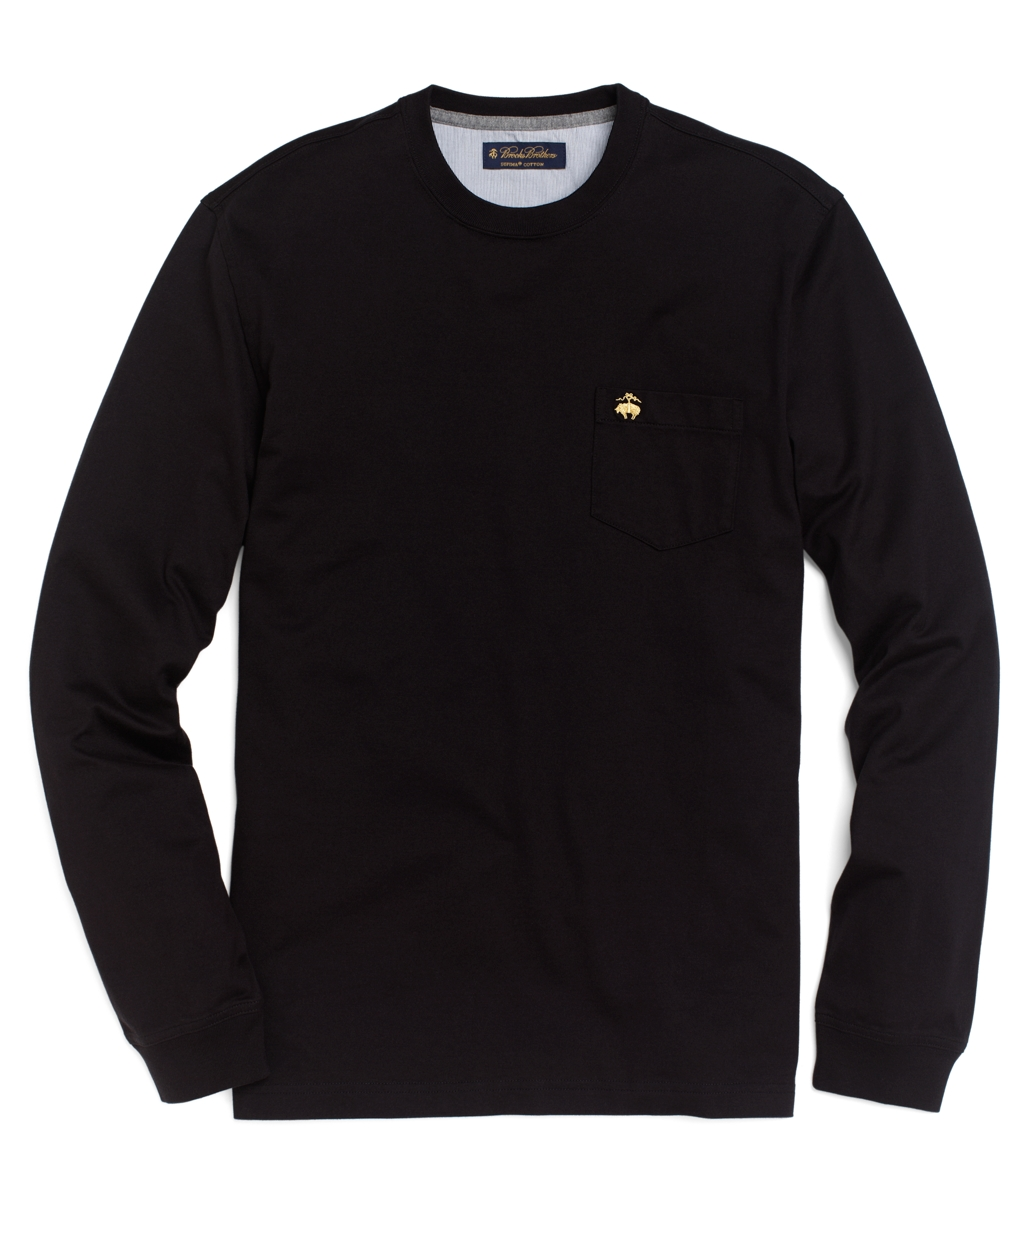 brooks brothers longsleeve golden fleece pocket tee shirt